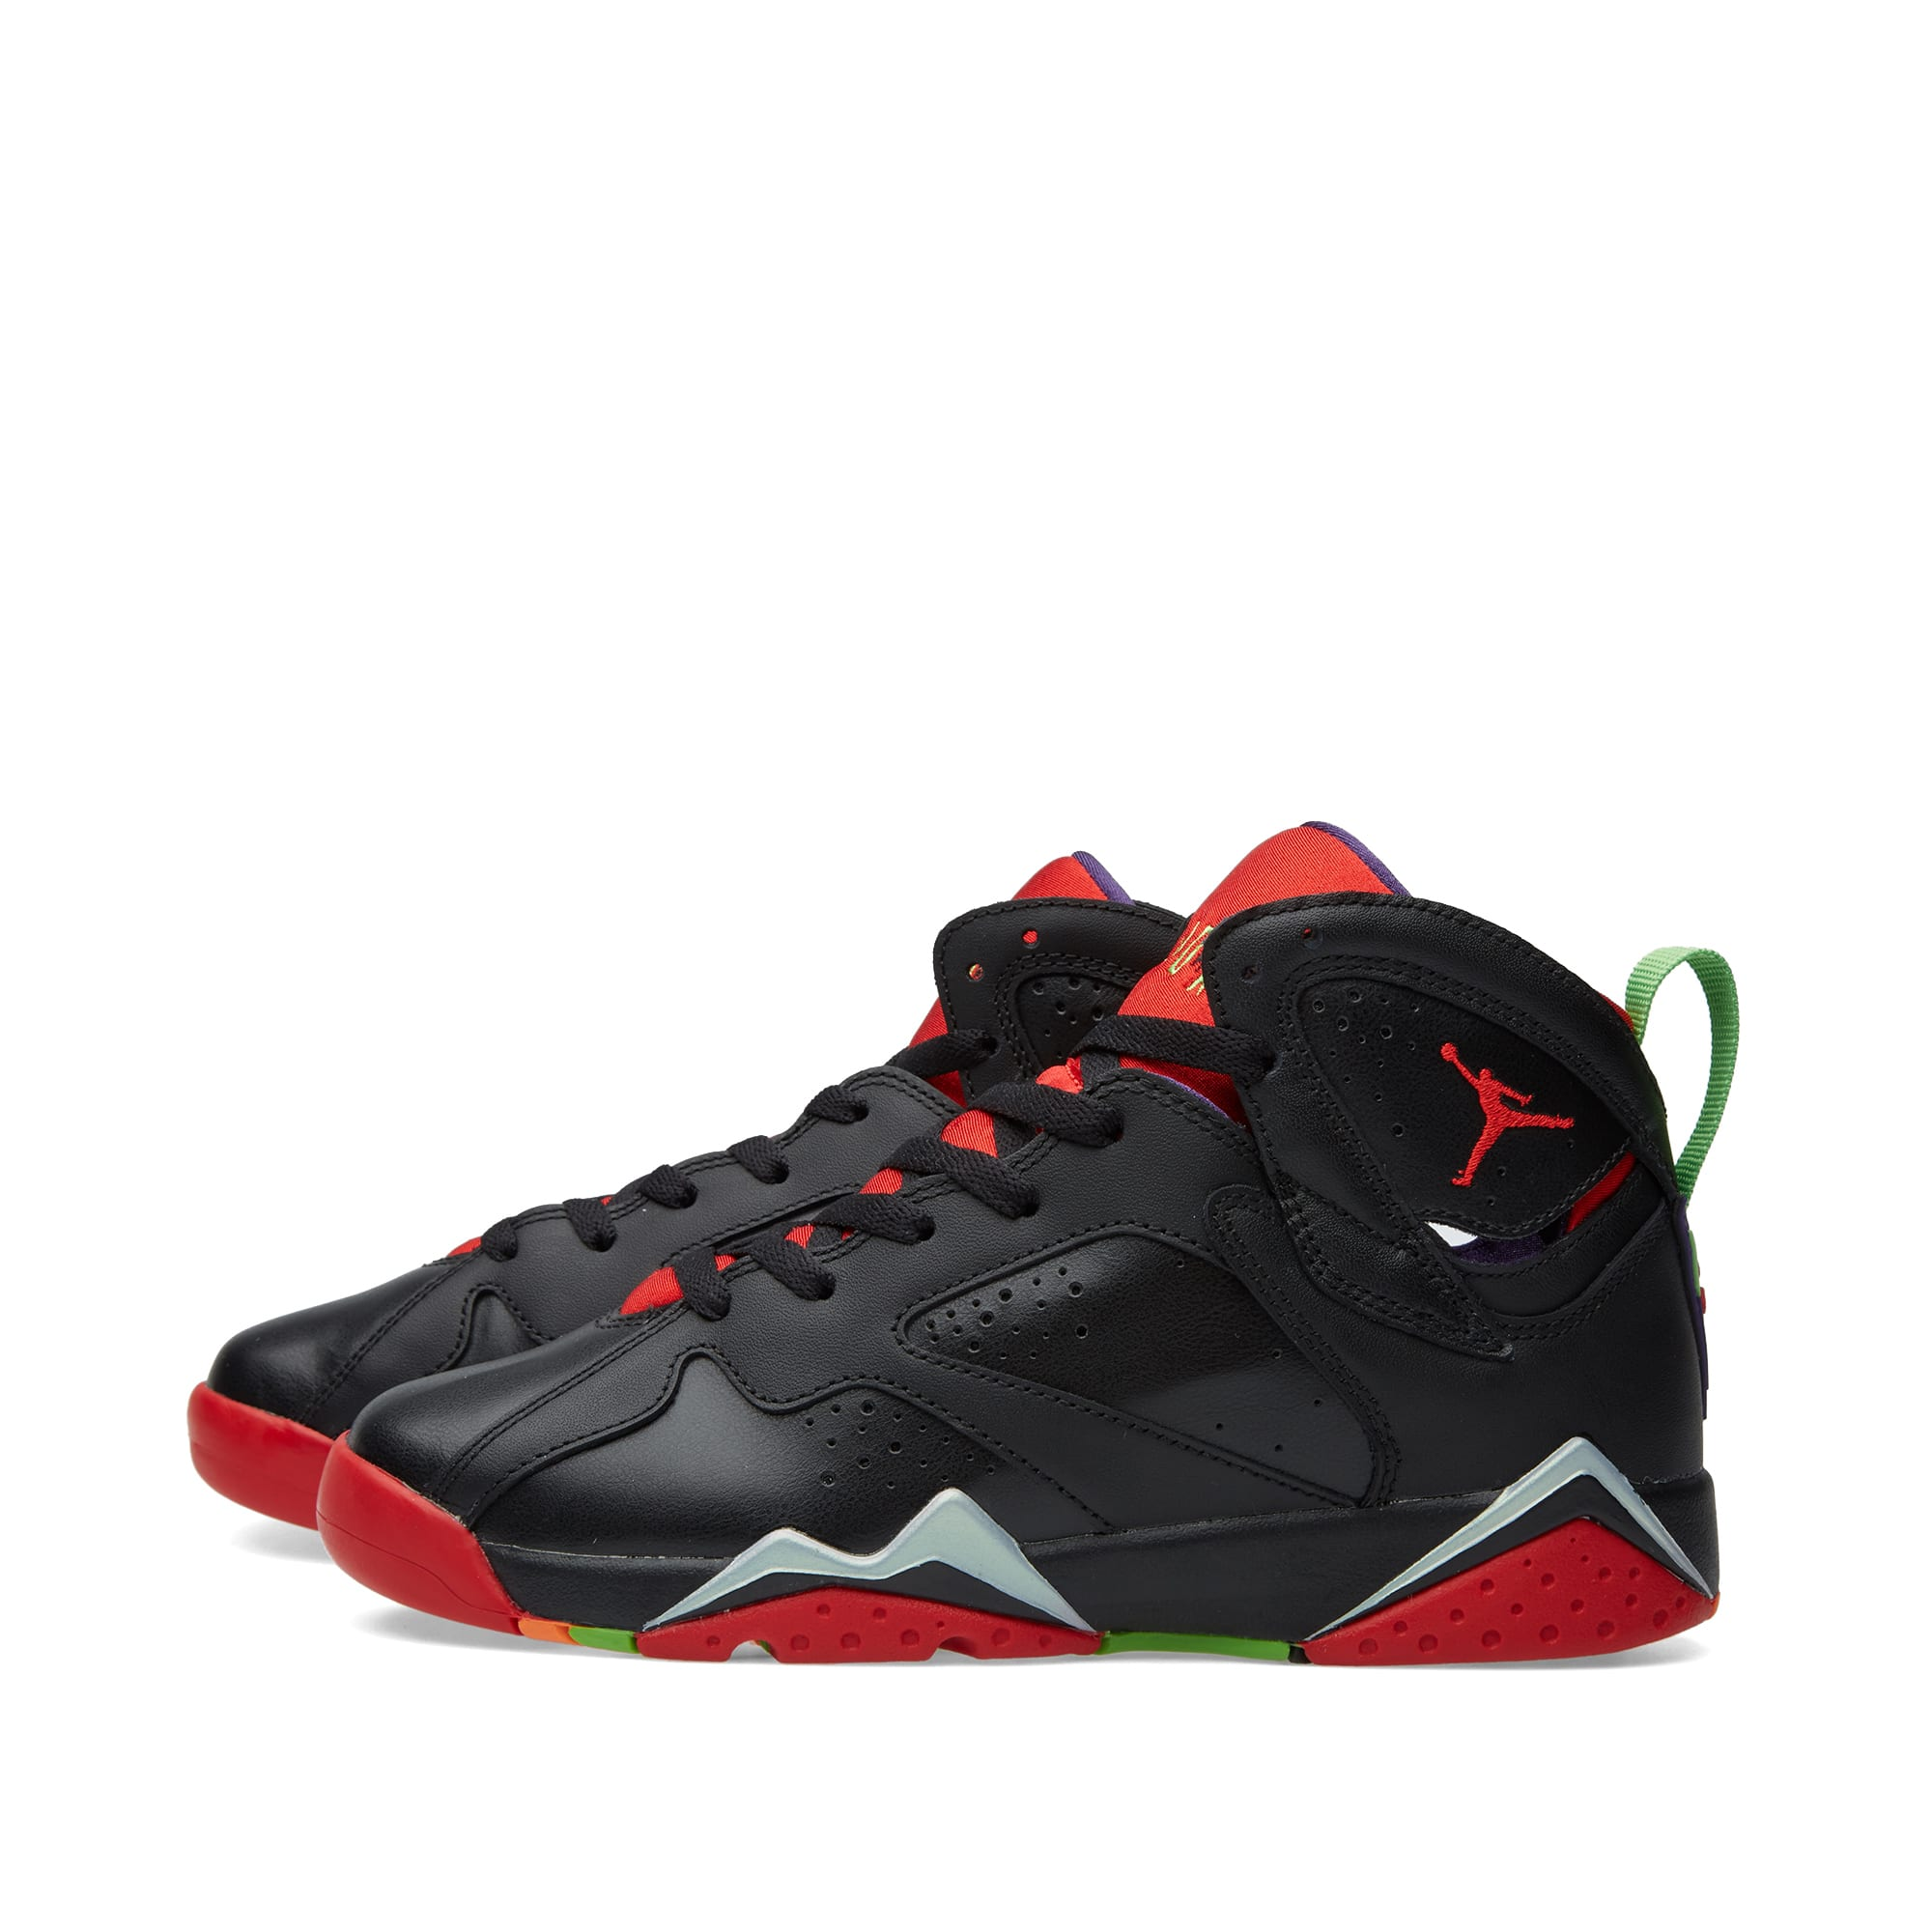 Nike Air Jordan VII Retro BG 'Marvin The Martian'